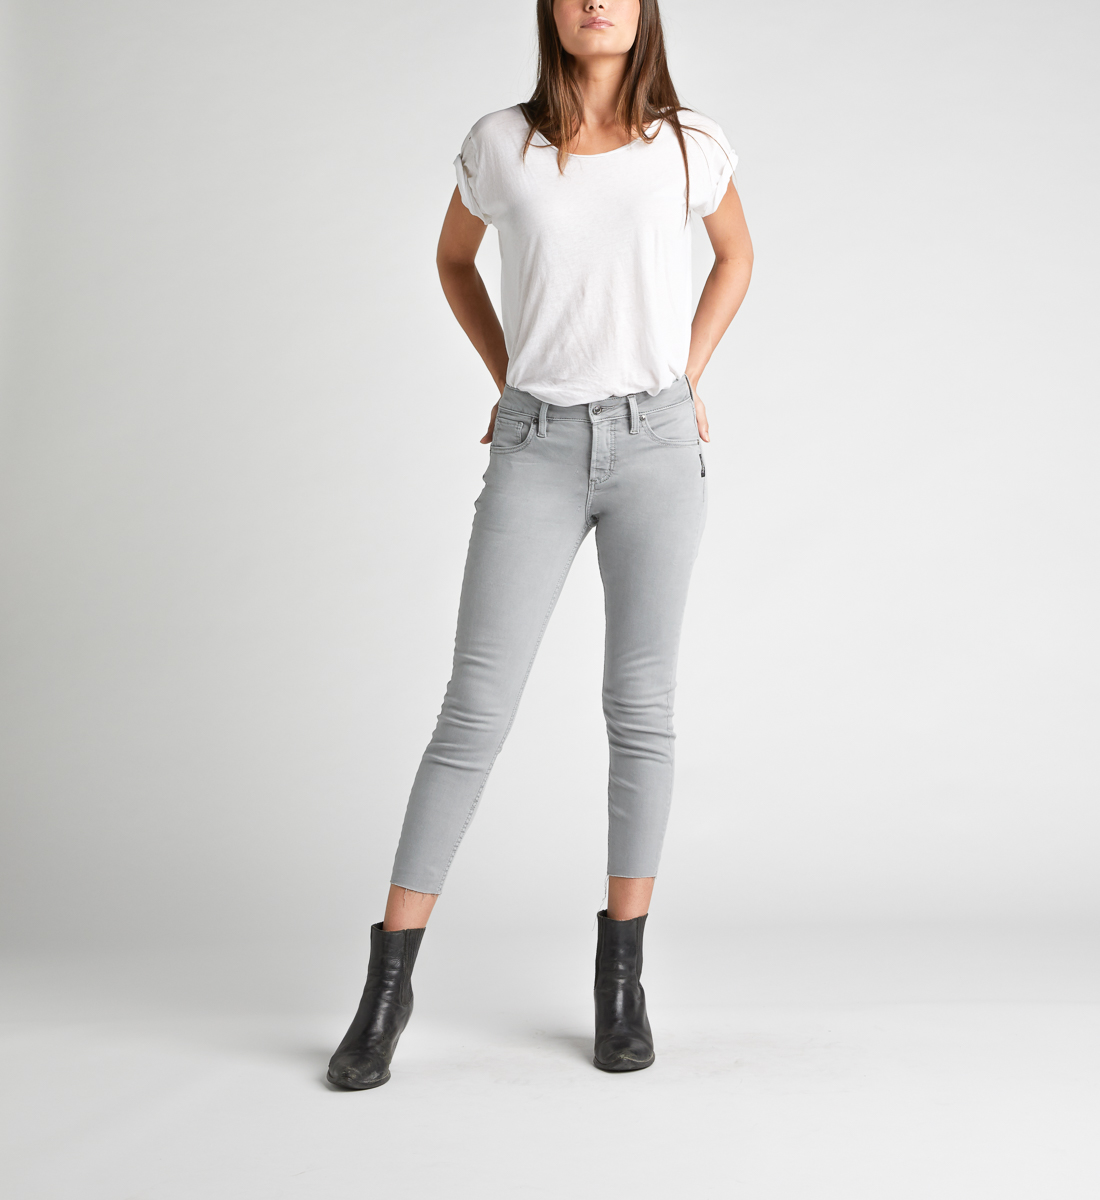 Avery High Rise Skinny Crop Pants,Grey Front